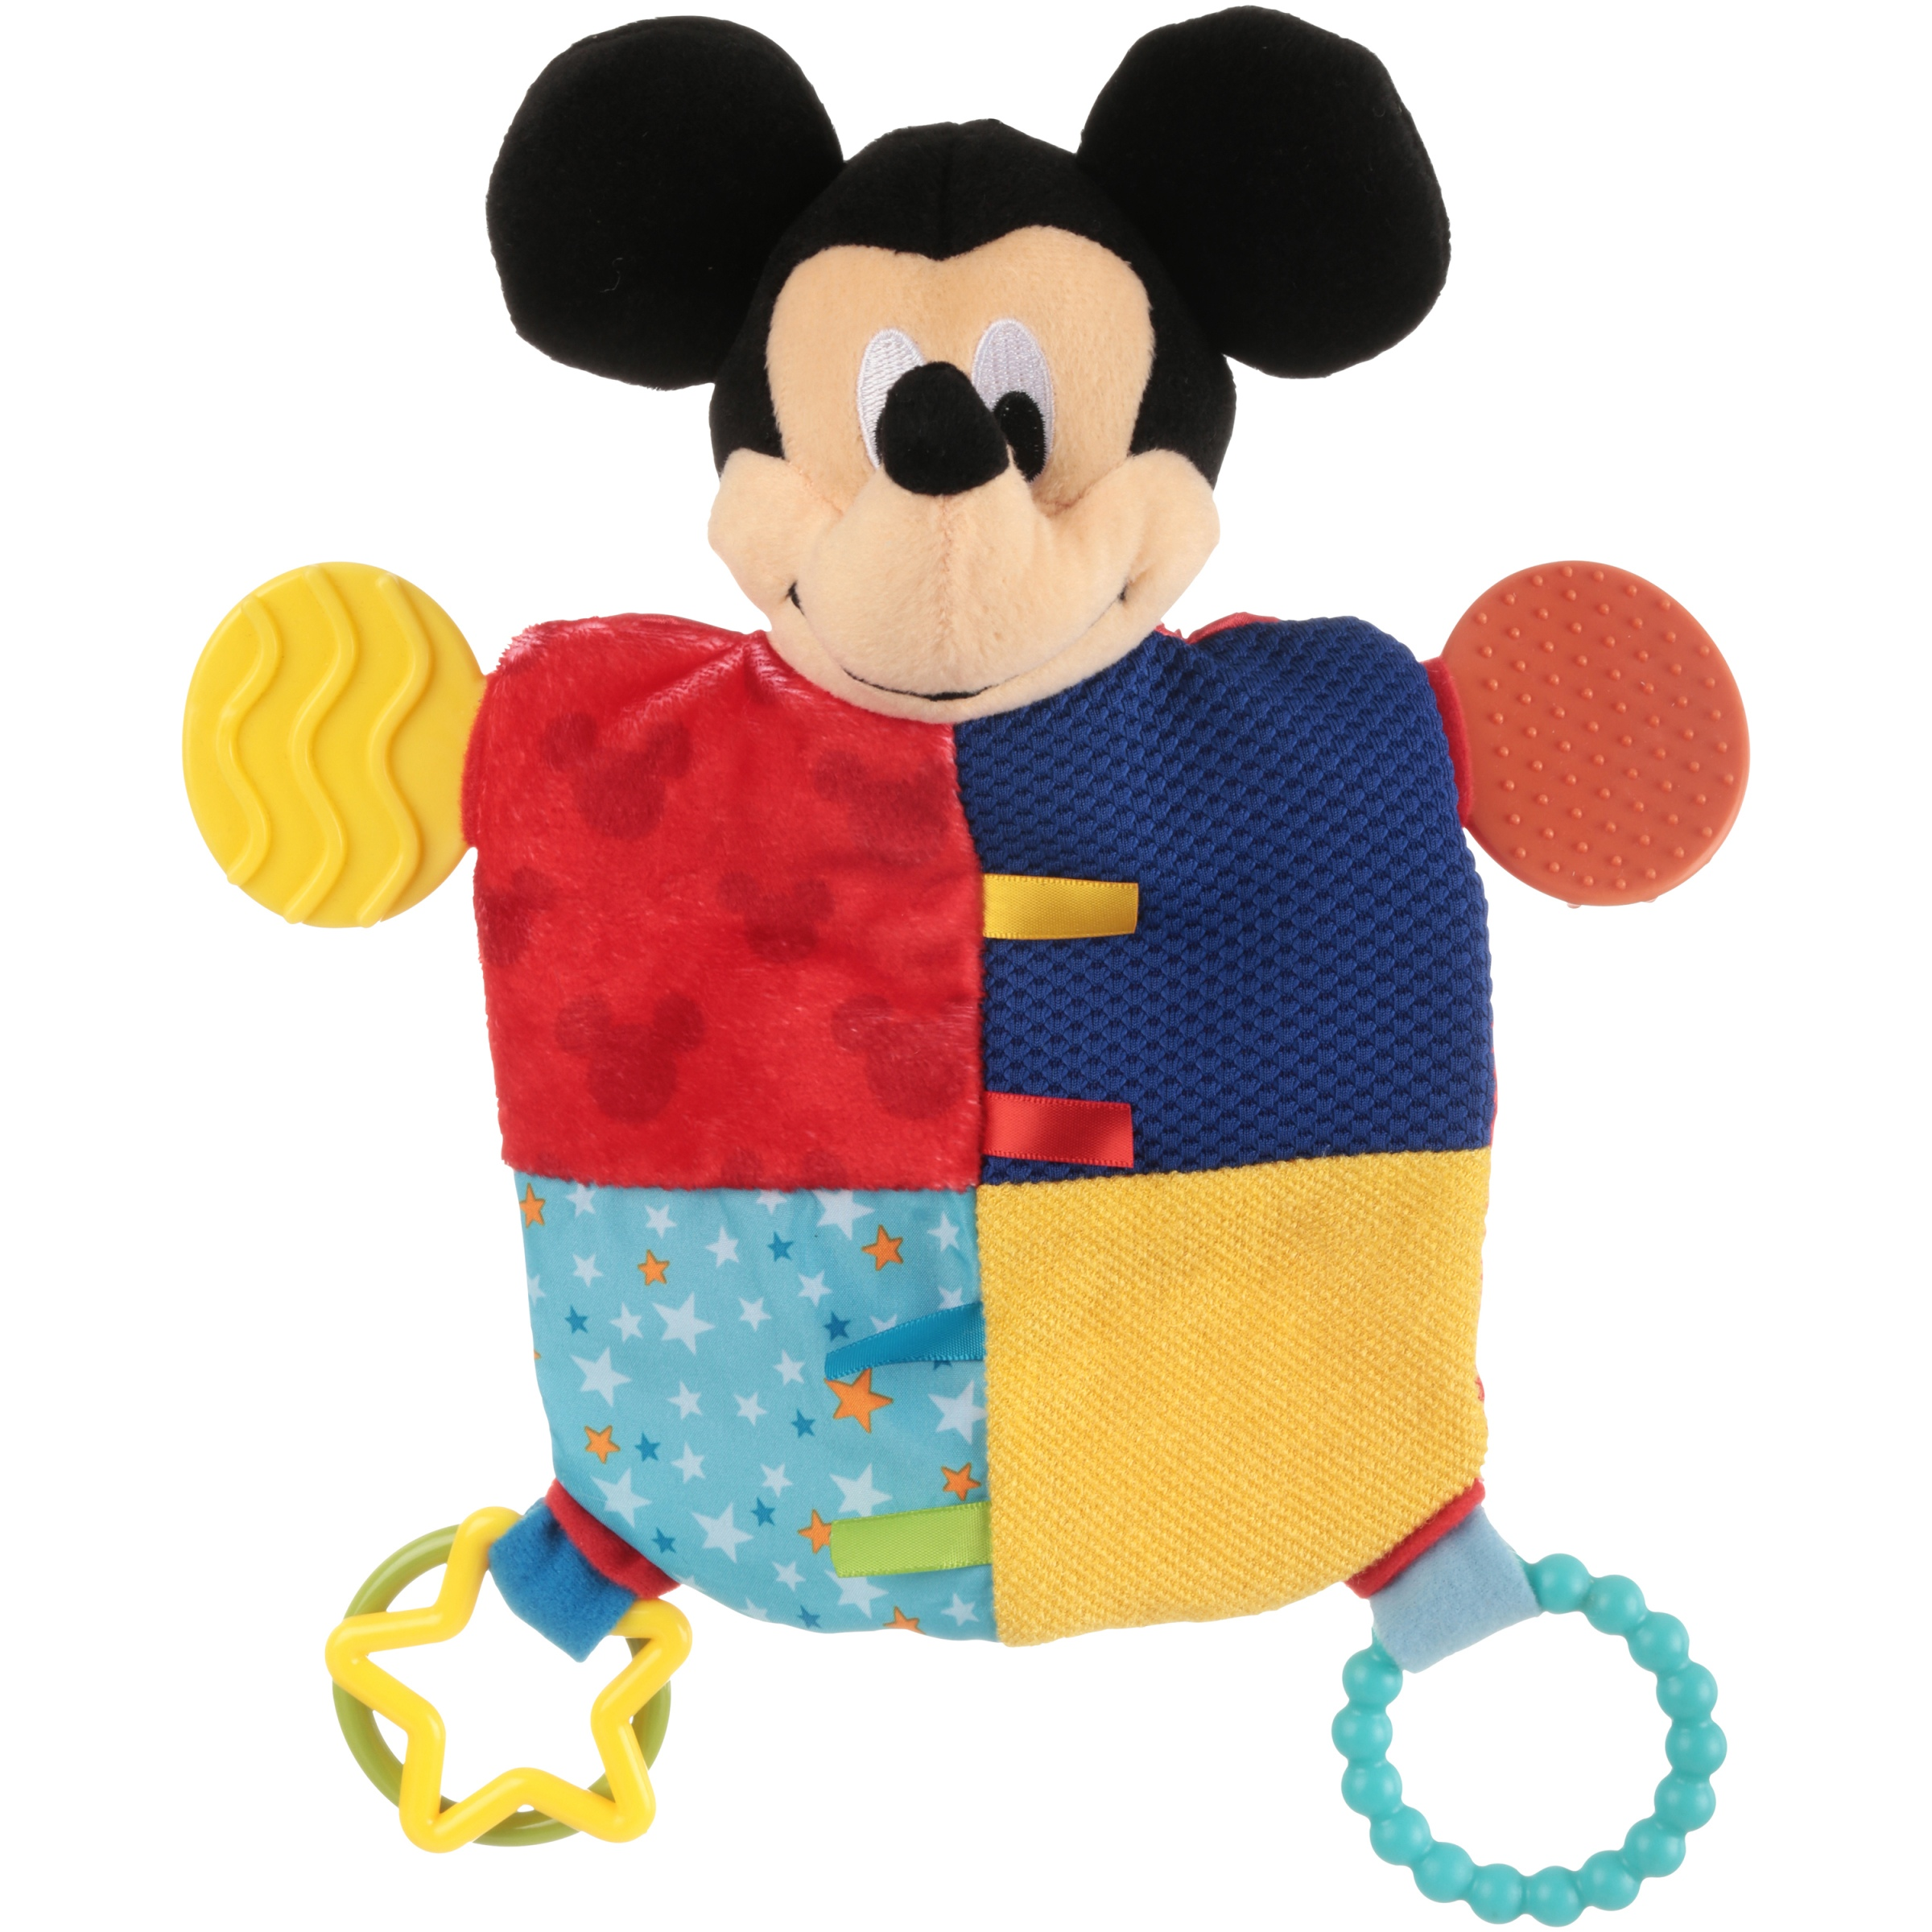 Disney Baby Mickey Mouse Flat Blanky Teether